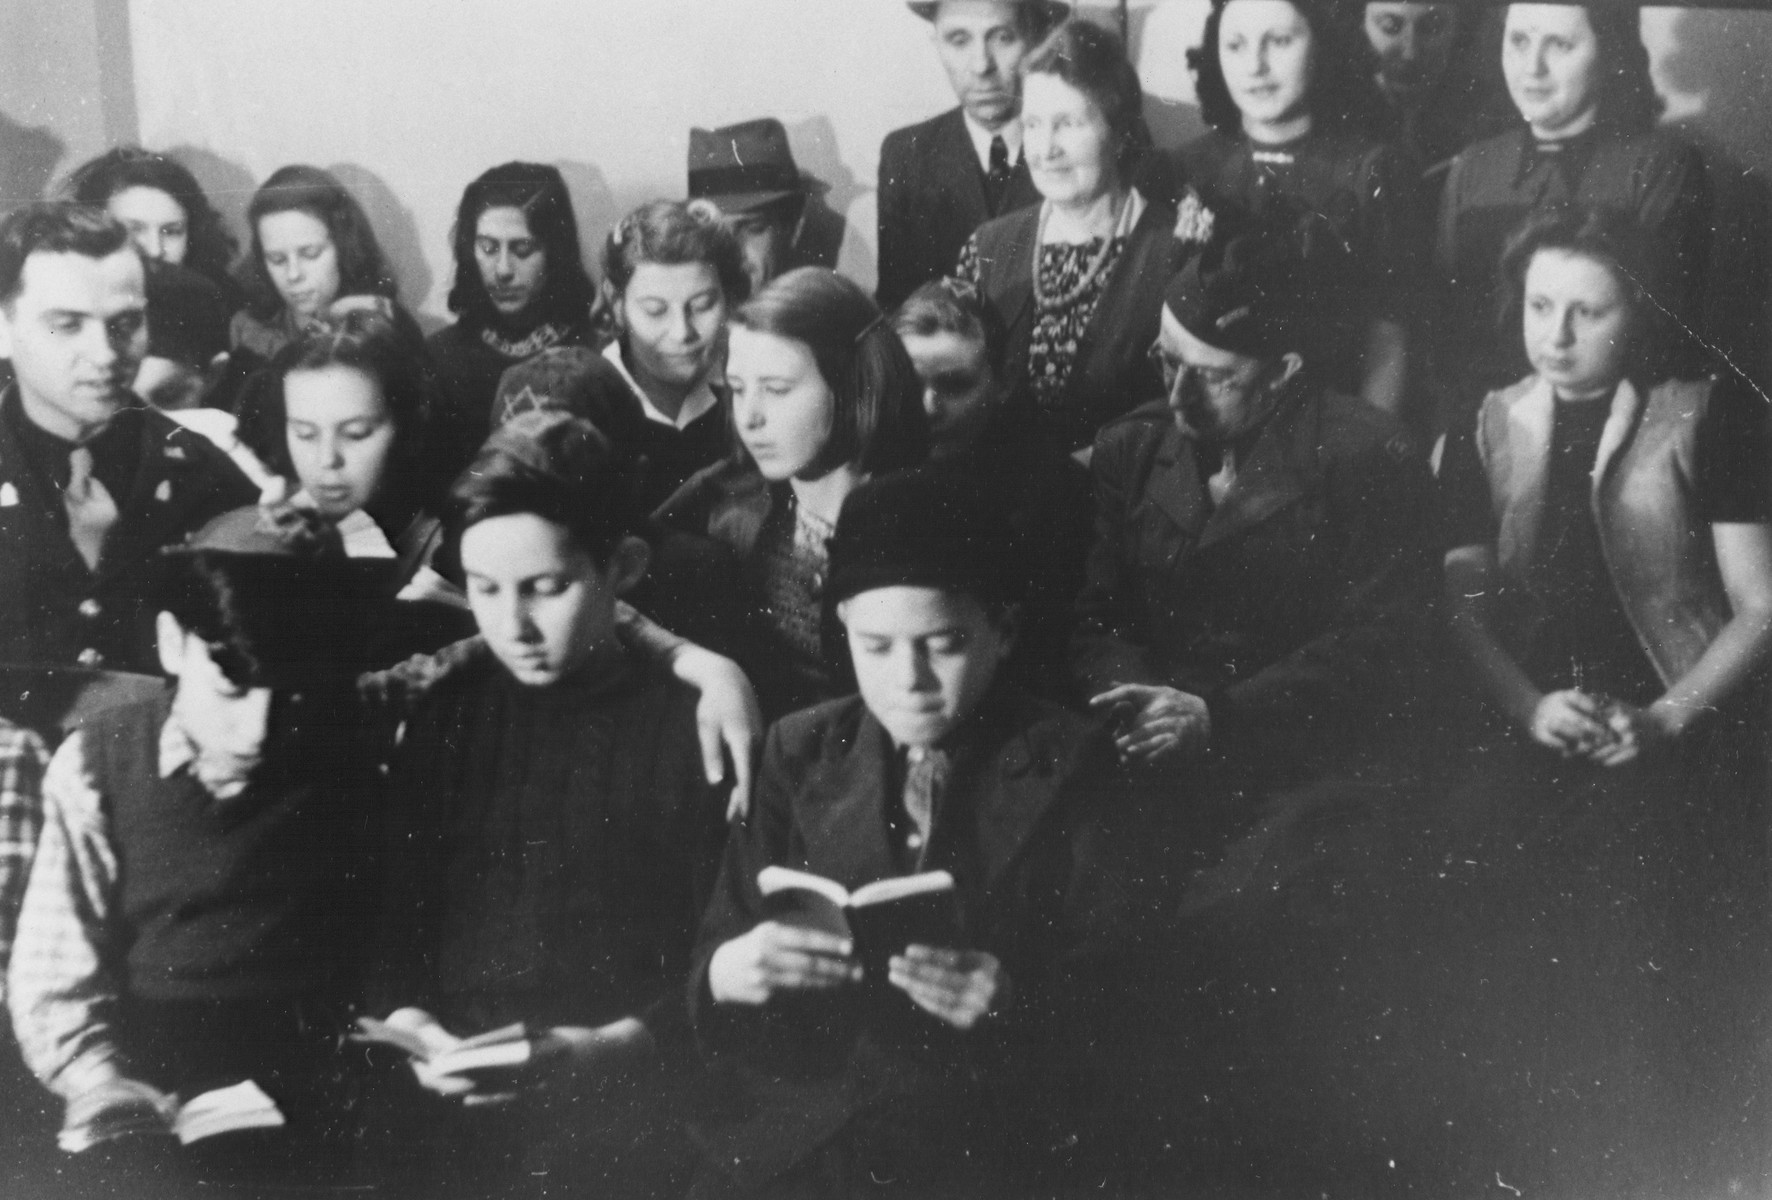 U.S. Army chaplain Rabbi Mayer Abramowitz assists students in the Jewish (Deutsche Juedische Jugend) school at the Berlin Chaplains' Center.  Abramowitz is pictured on the left in uniform.